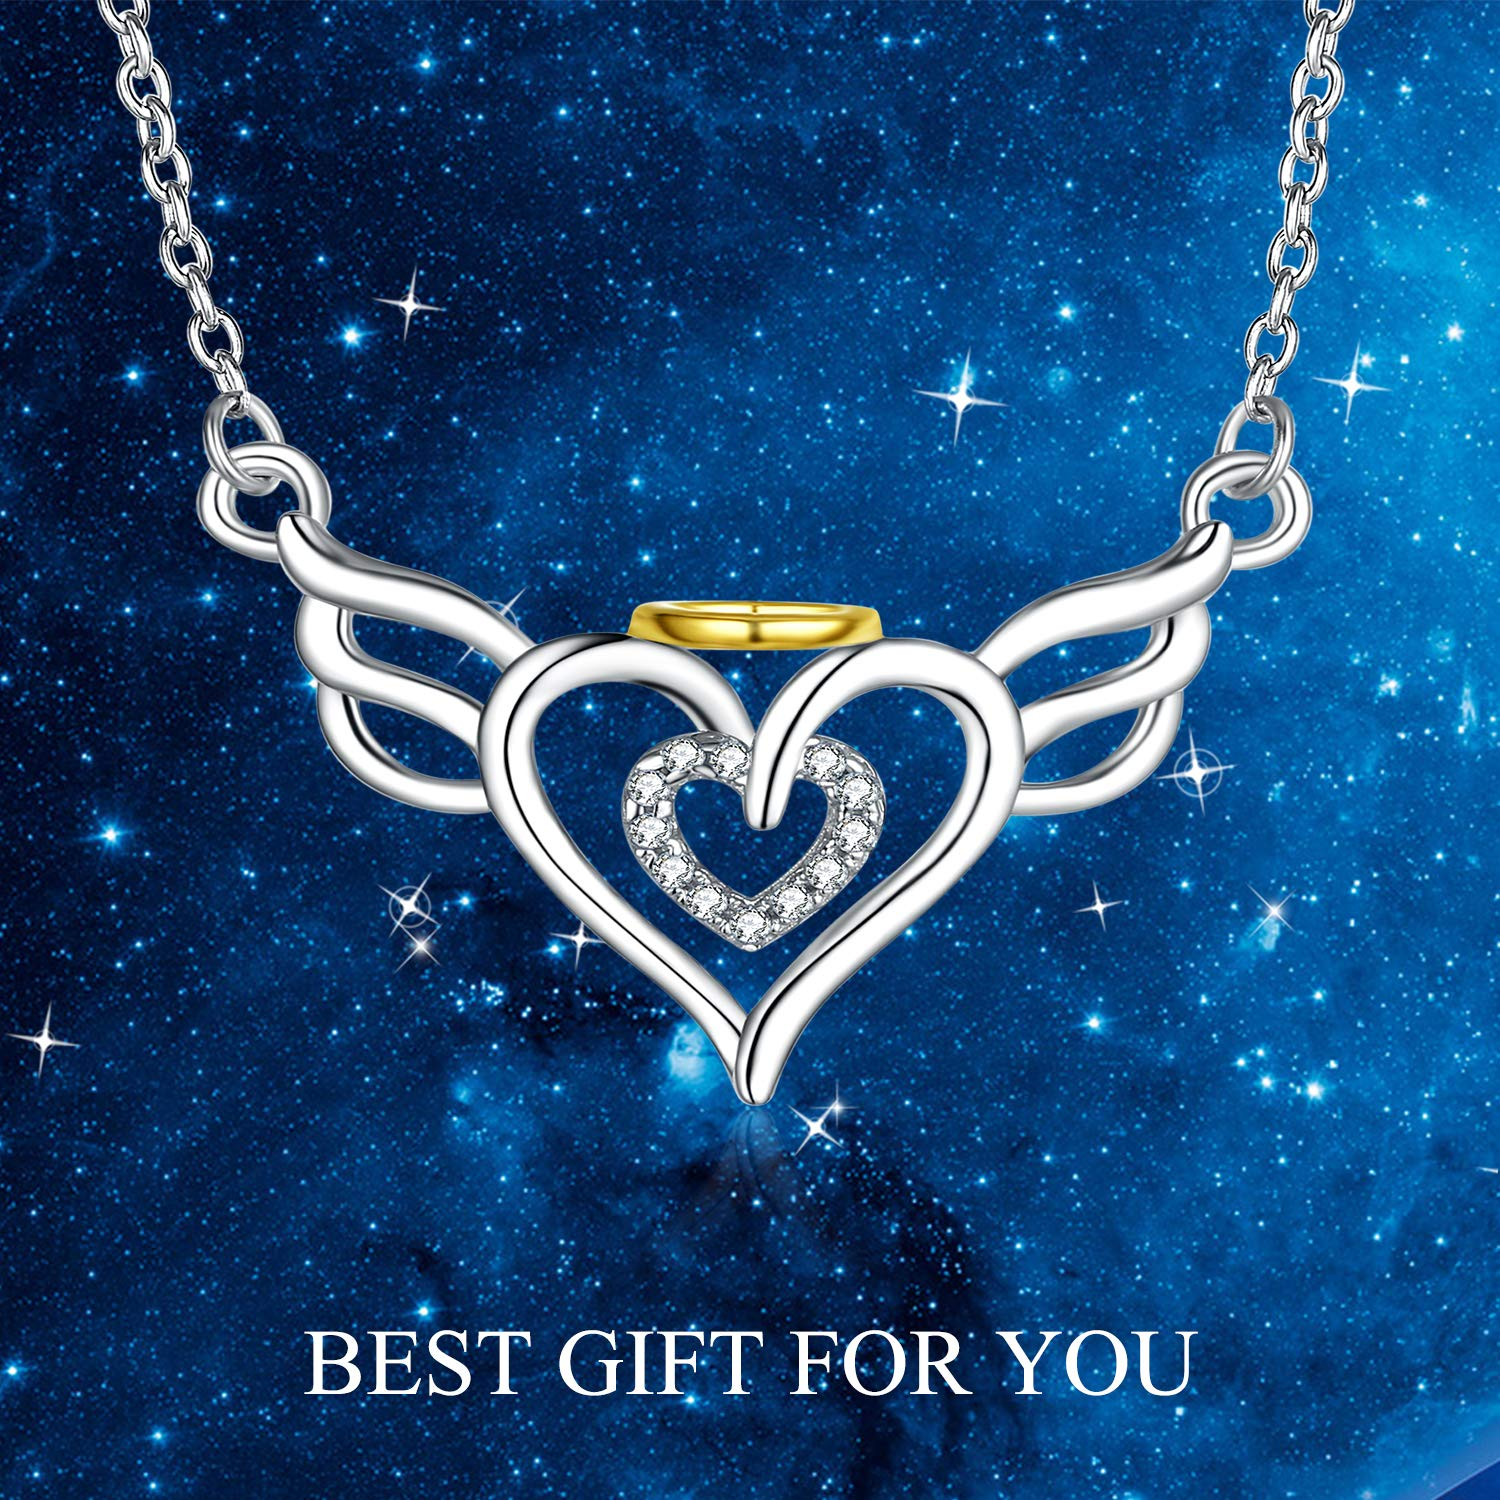 Sterling Silver Pendant Necklaces - Women 18k Gold Plated Charm Jewelry - Wings Heart by SISGEM (Image #2)